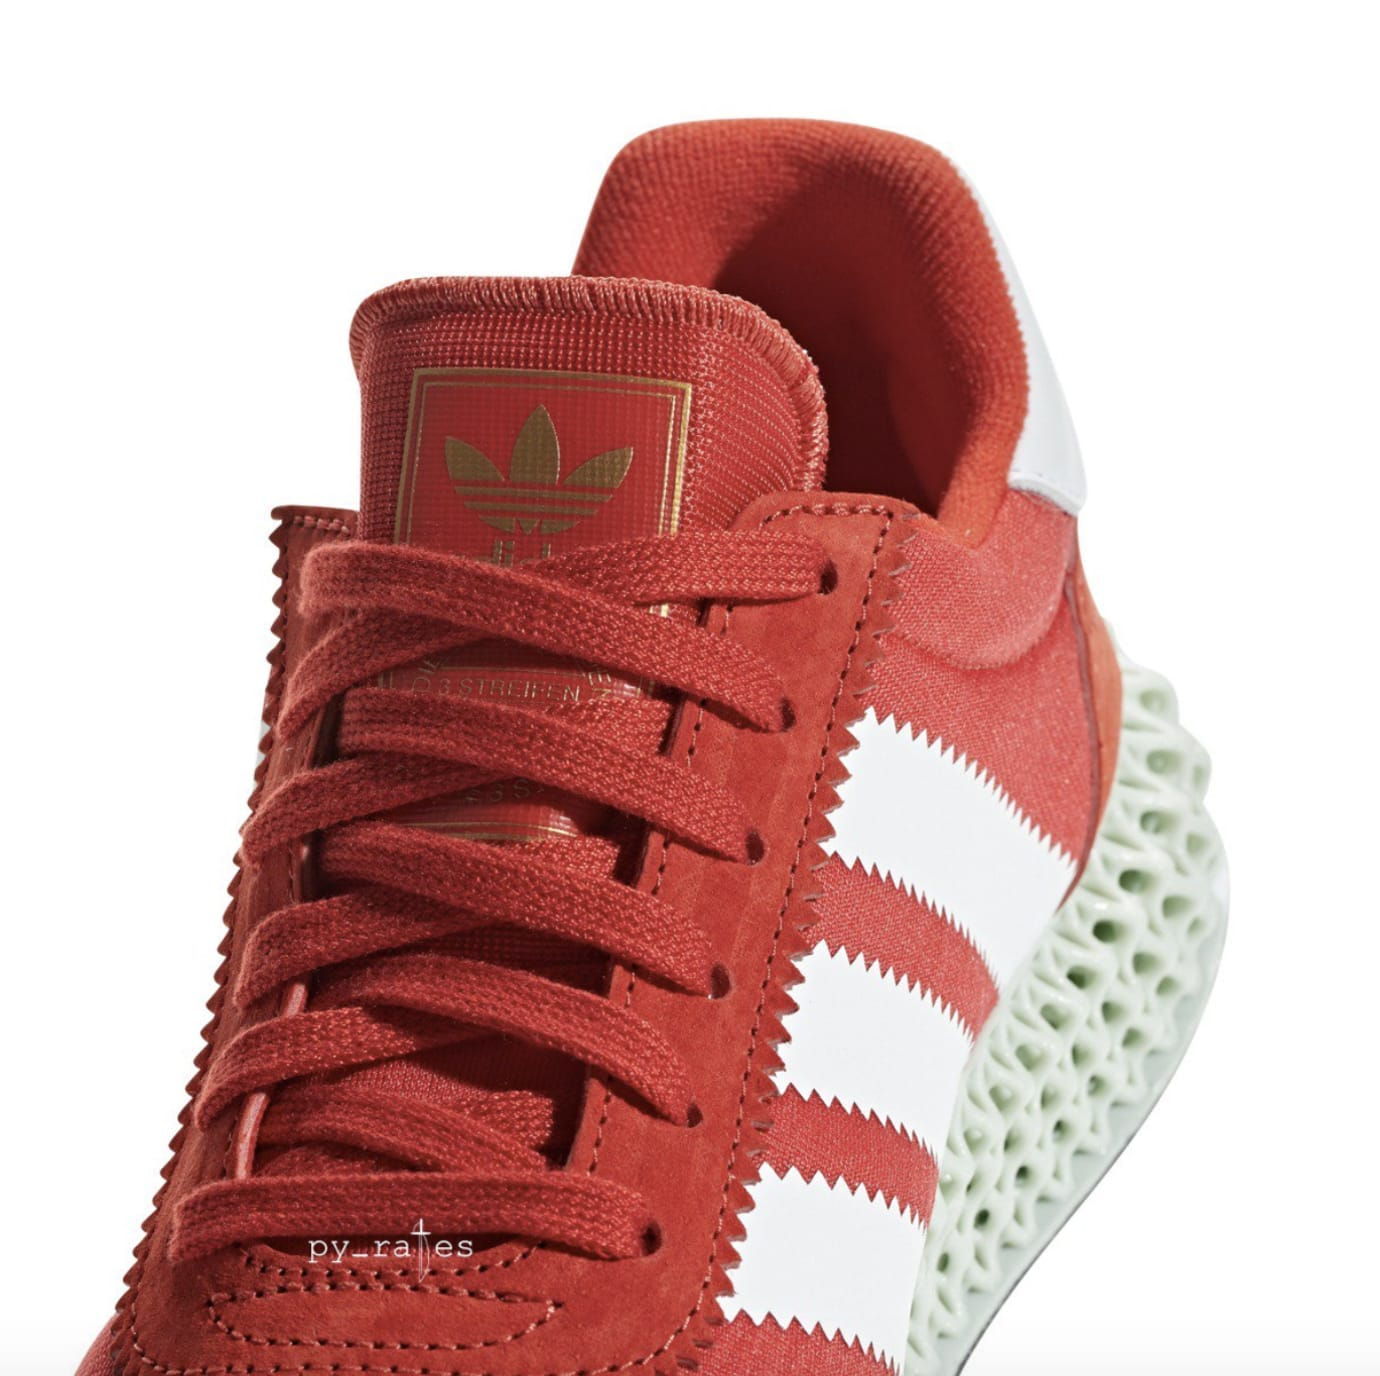 Adidas 4D-5923 'Red/White' (Tongue)